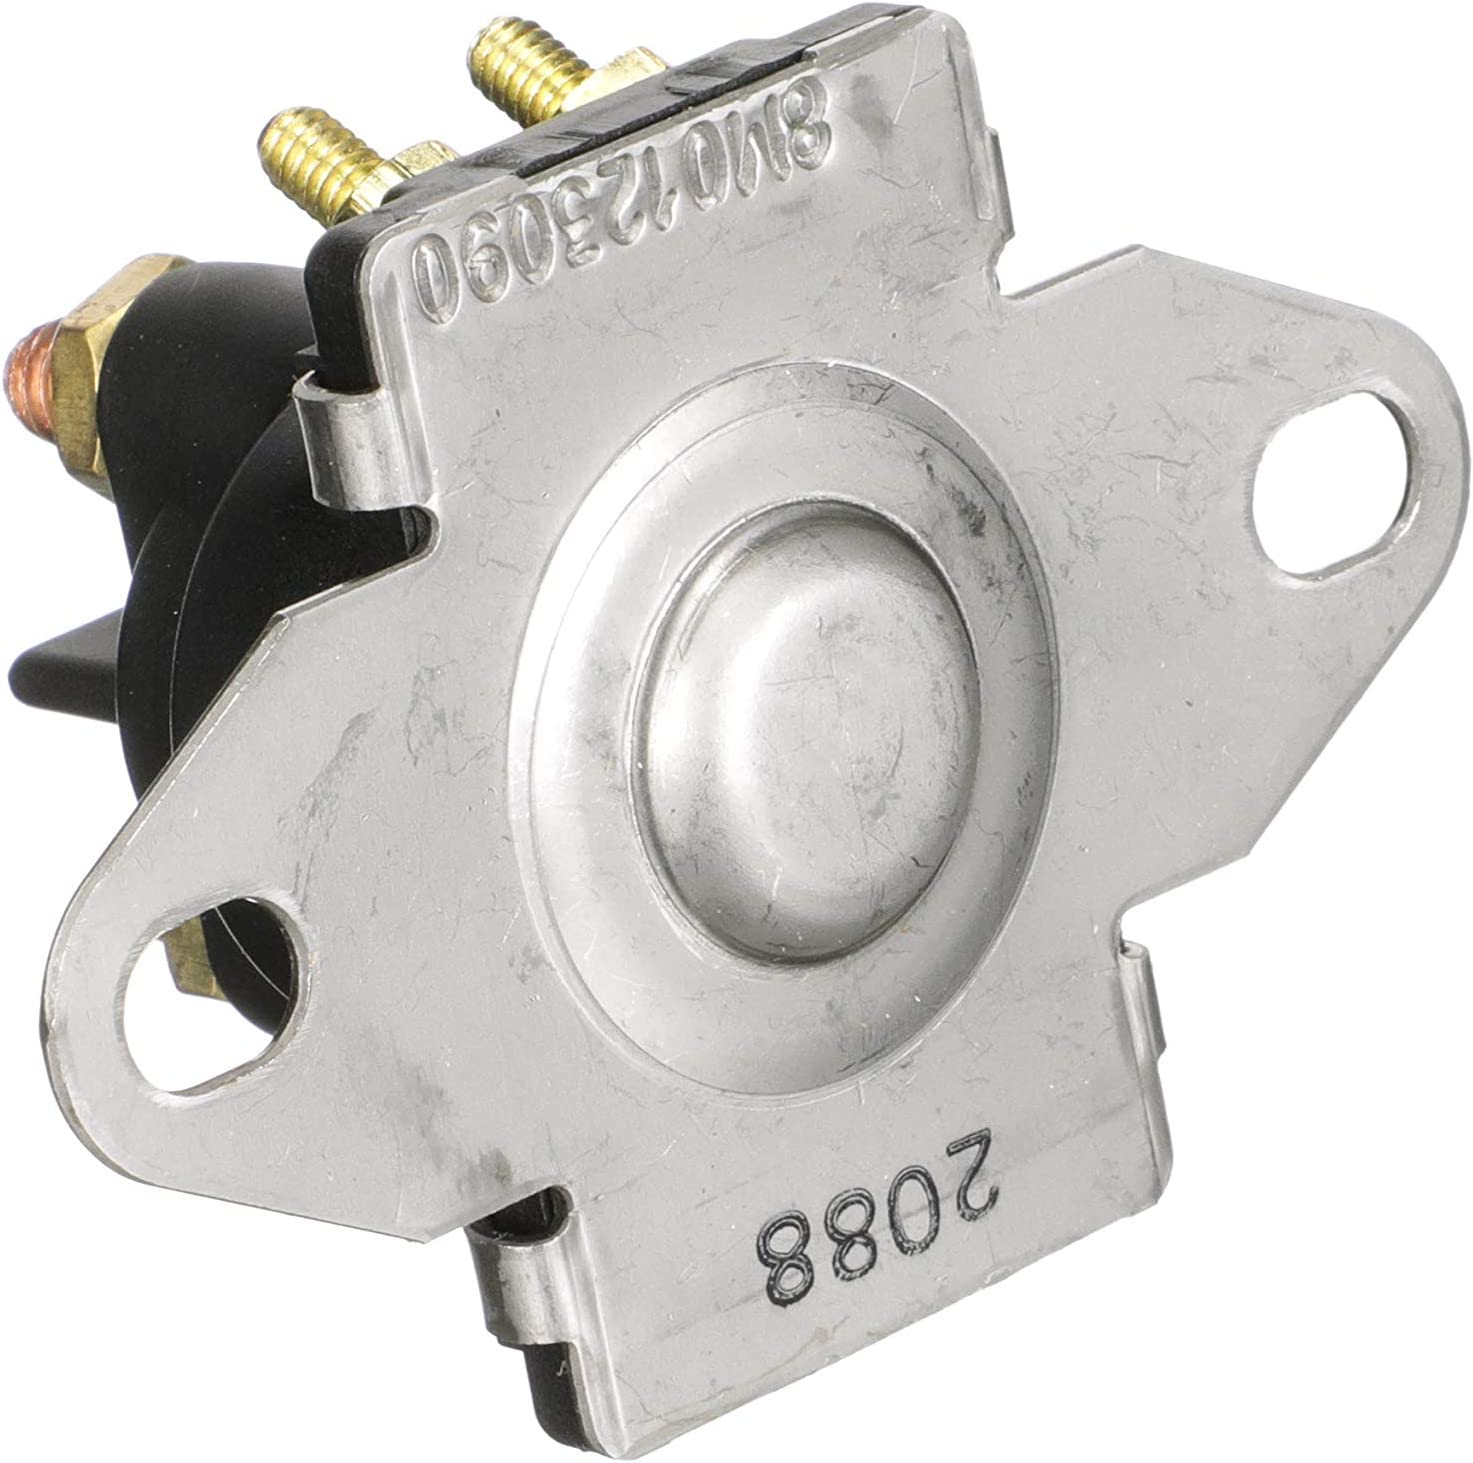 Quicksilver Starter Solenoid 96054T - for Out or Opening large release Japan Maker New sale Mariner Mercury